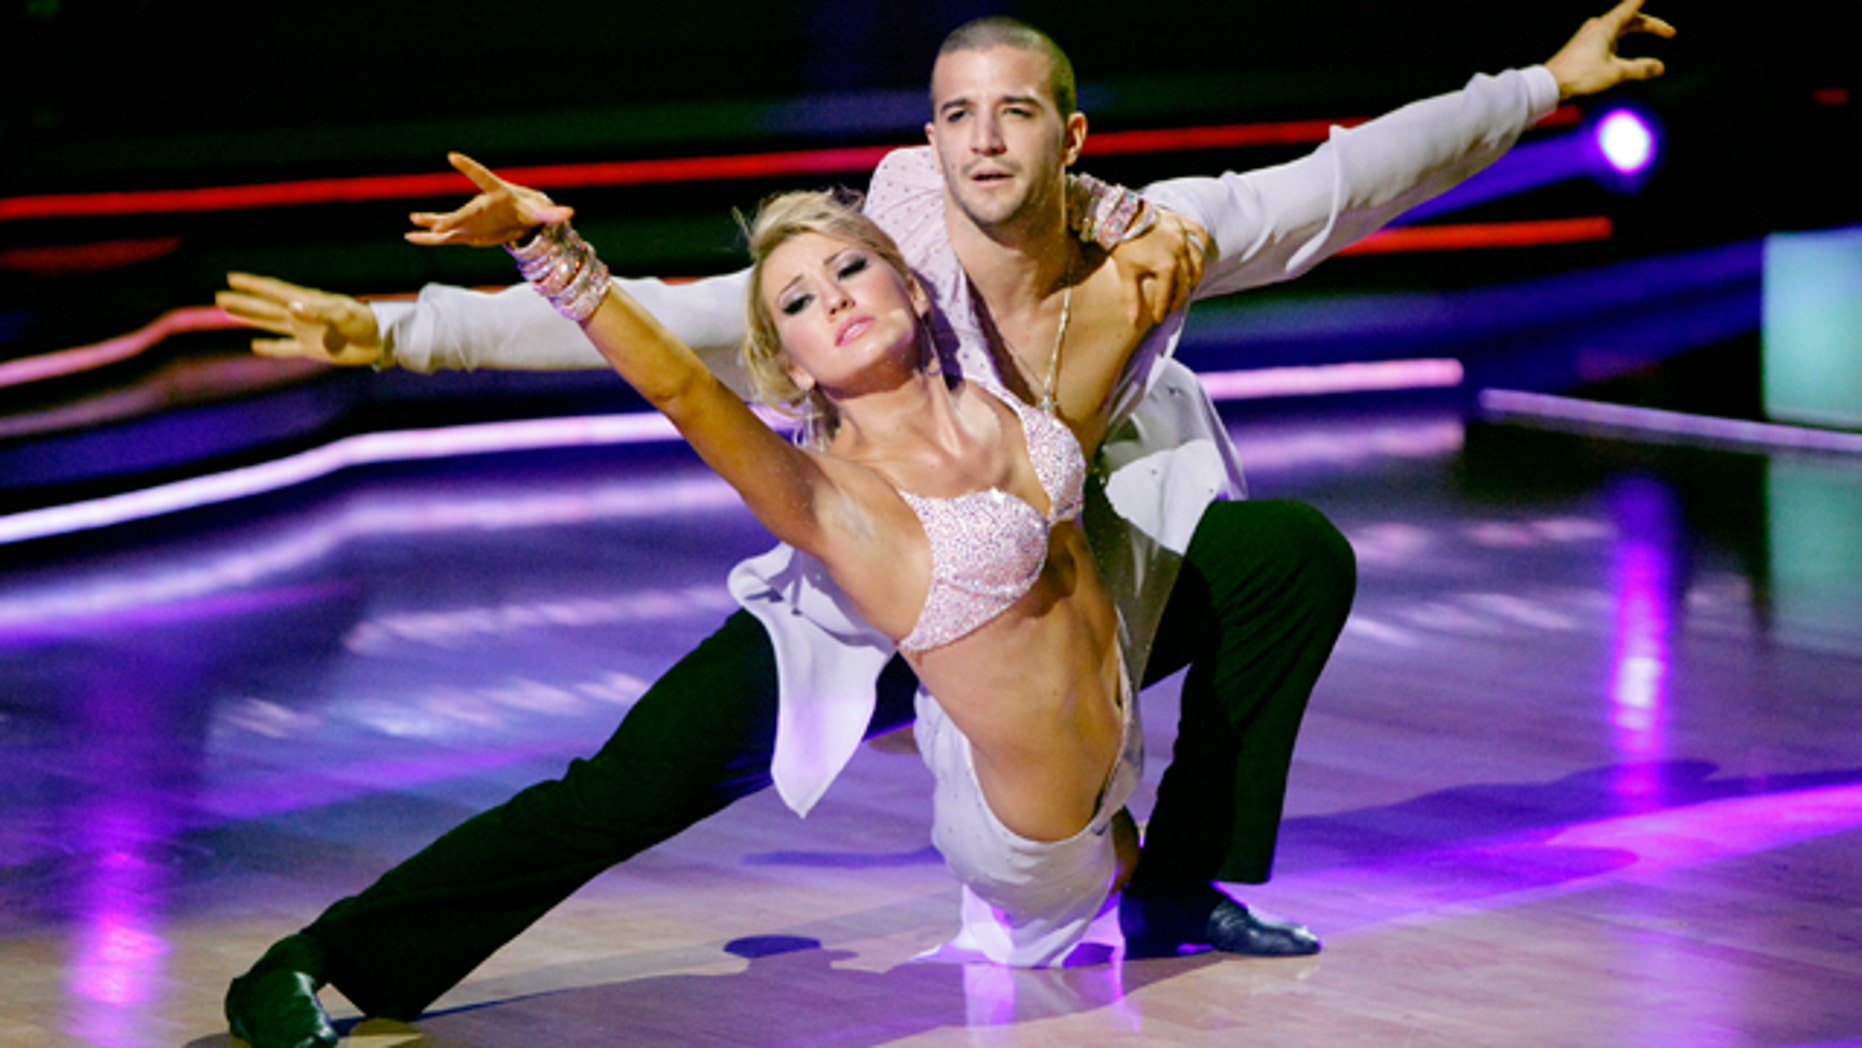 """May 16: In this publicity image released by ABC, Chelsea Kane, right, and her partner Mark Ballas compete during the celebrity dance competition """"Dancing with the Stars"""" in Los Angeles."""